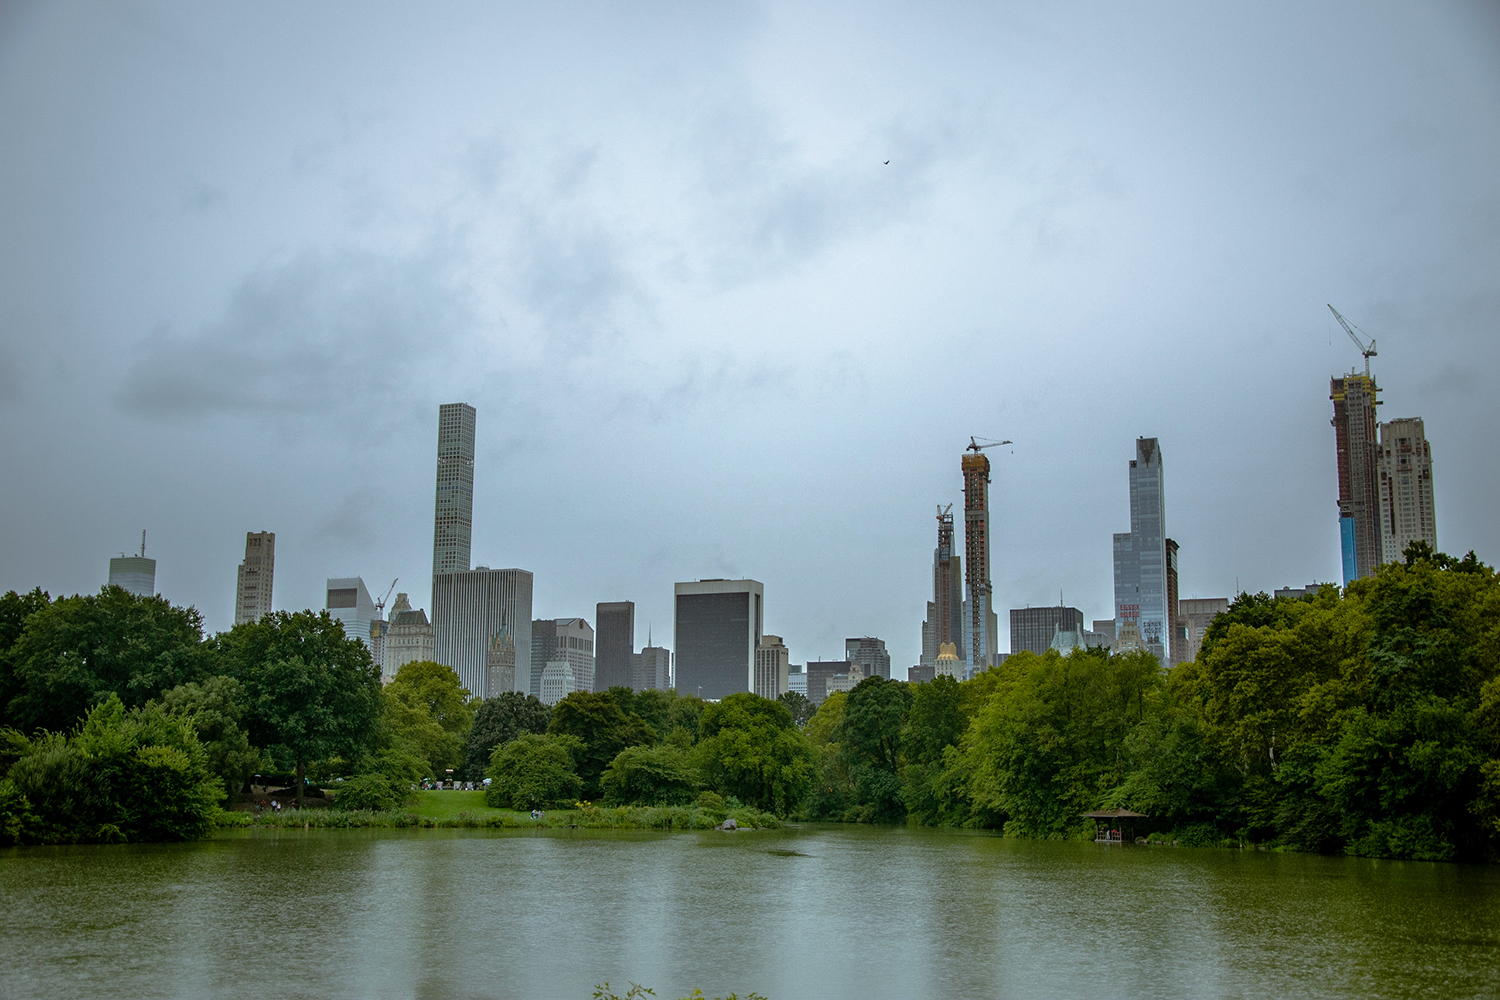 Central_Park_New_York_City_USA_2018_Ruo_Ling_Lu